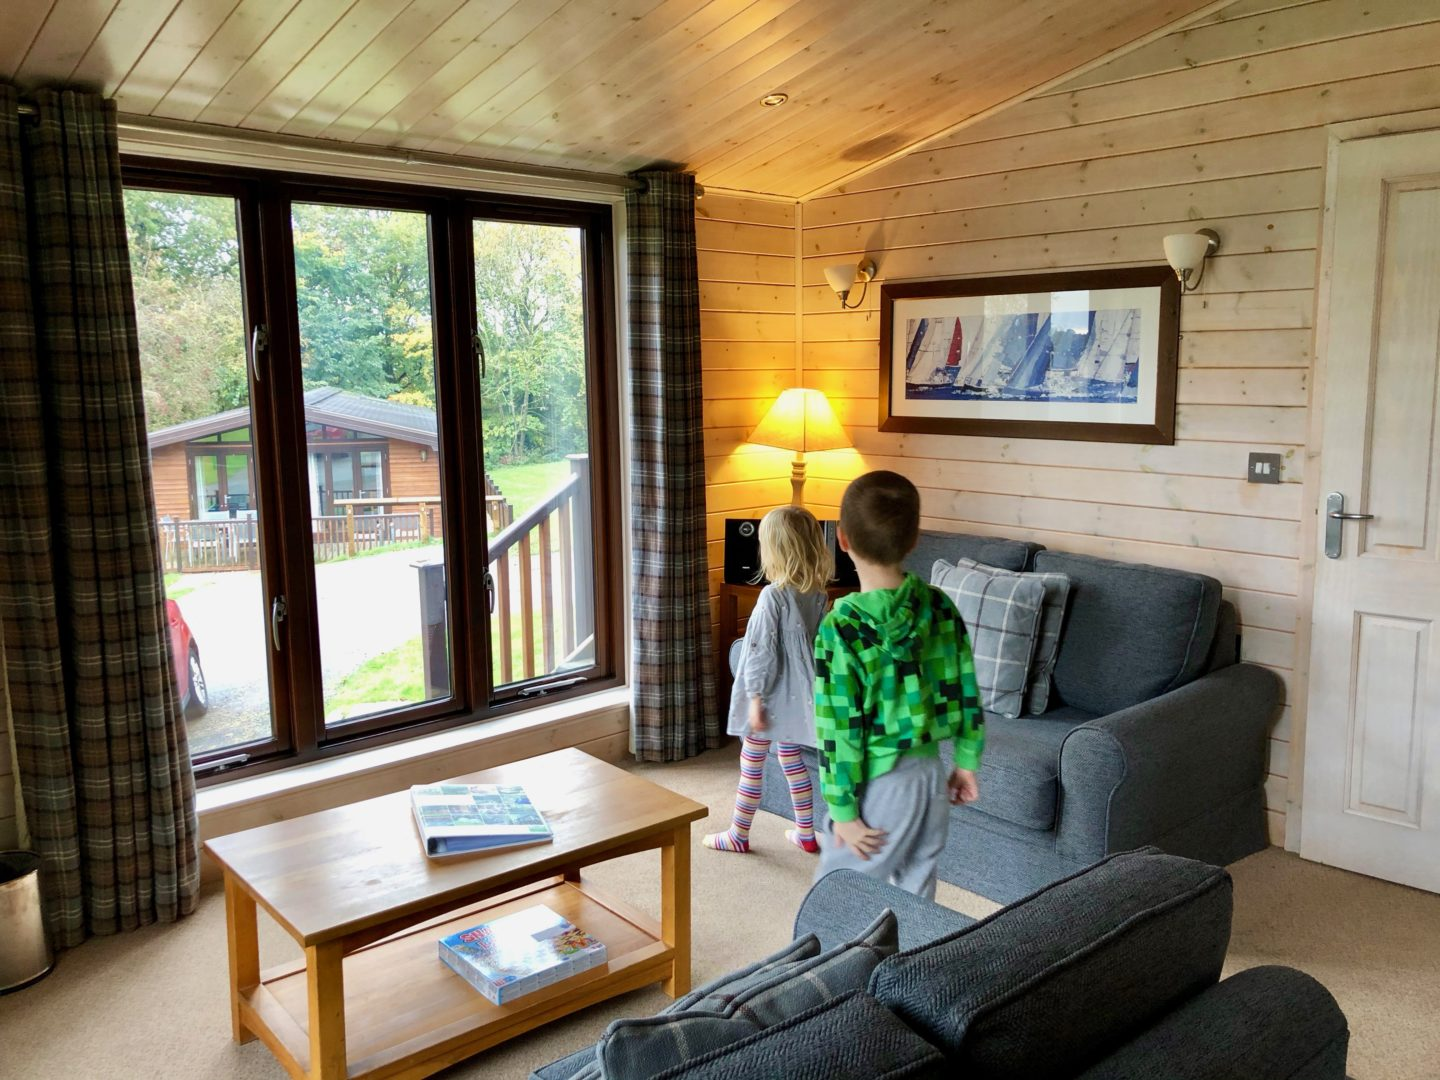 AD: Landal Sandybrook Peak District family review - a relaxing autumnal long weekend break. Kids look round the classic vogue lodge.